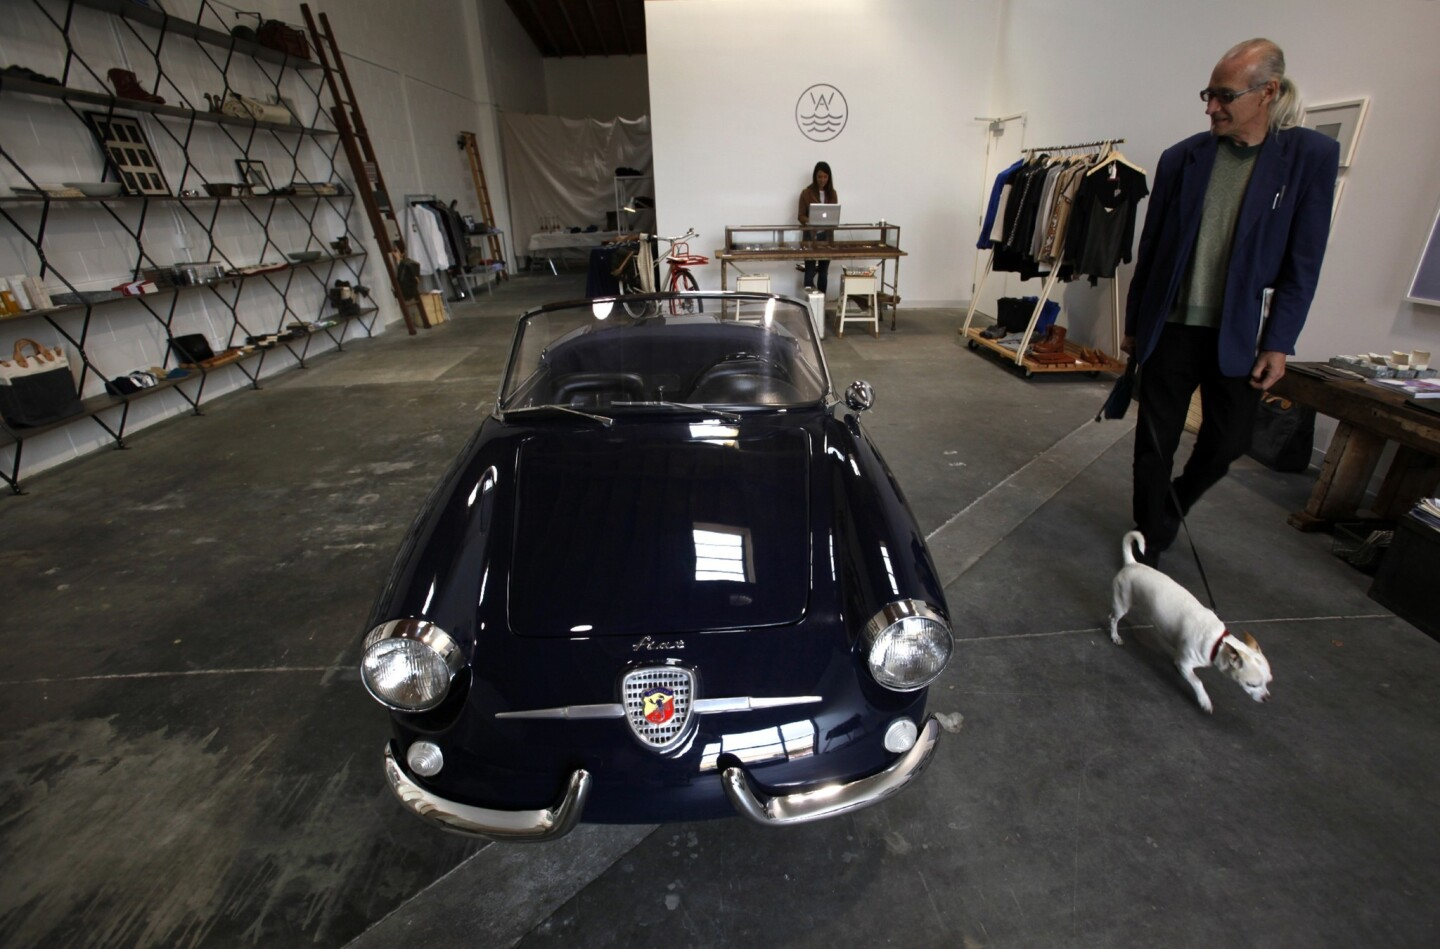 """This smartly styled design gallery opened two weeks ago with an eclectic mix including furniture by downtown designer Tim Campbell, ceramics by Echo Park potter Victoria Morris and made-in-L.A. Weiss watches. """"It's a California edit on everything,"""" creative director Raan Parton said. One exception: The 1959 Fiat Abarth 750 Spider sitting in the middle of the modern, skylighted space. Here, Drew Lesso walks past the car, which is for sale."""